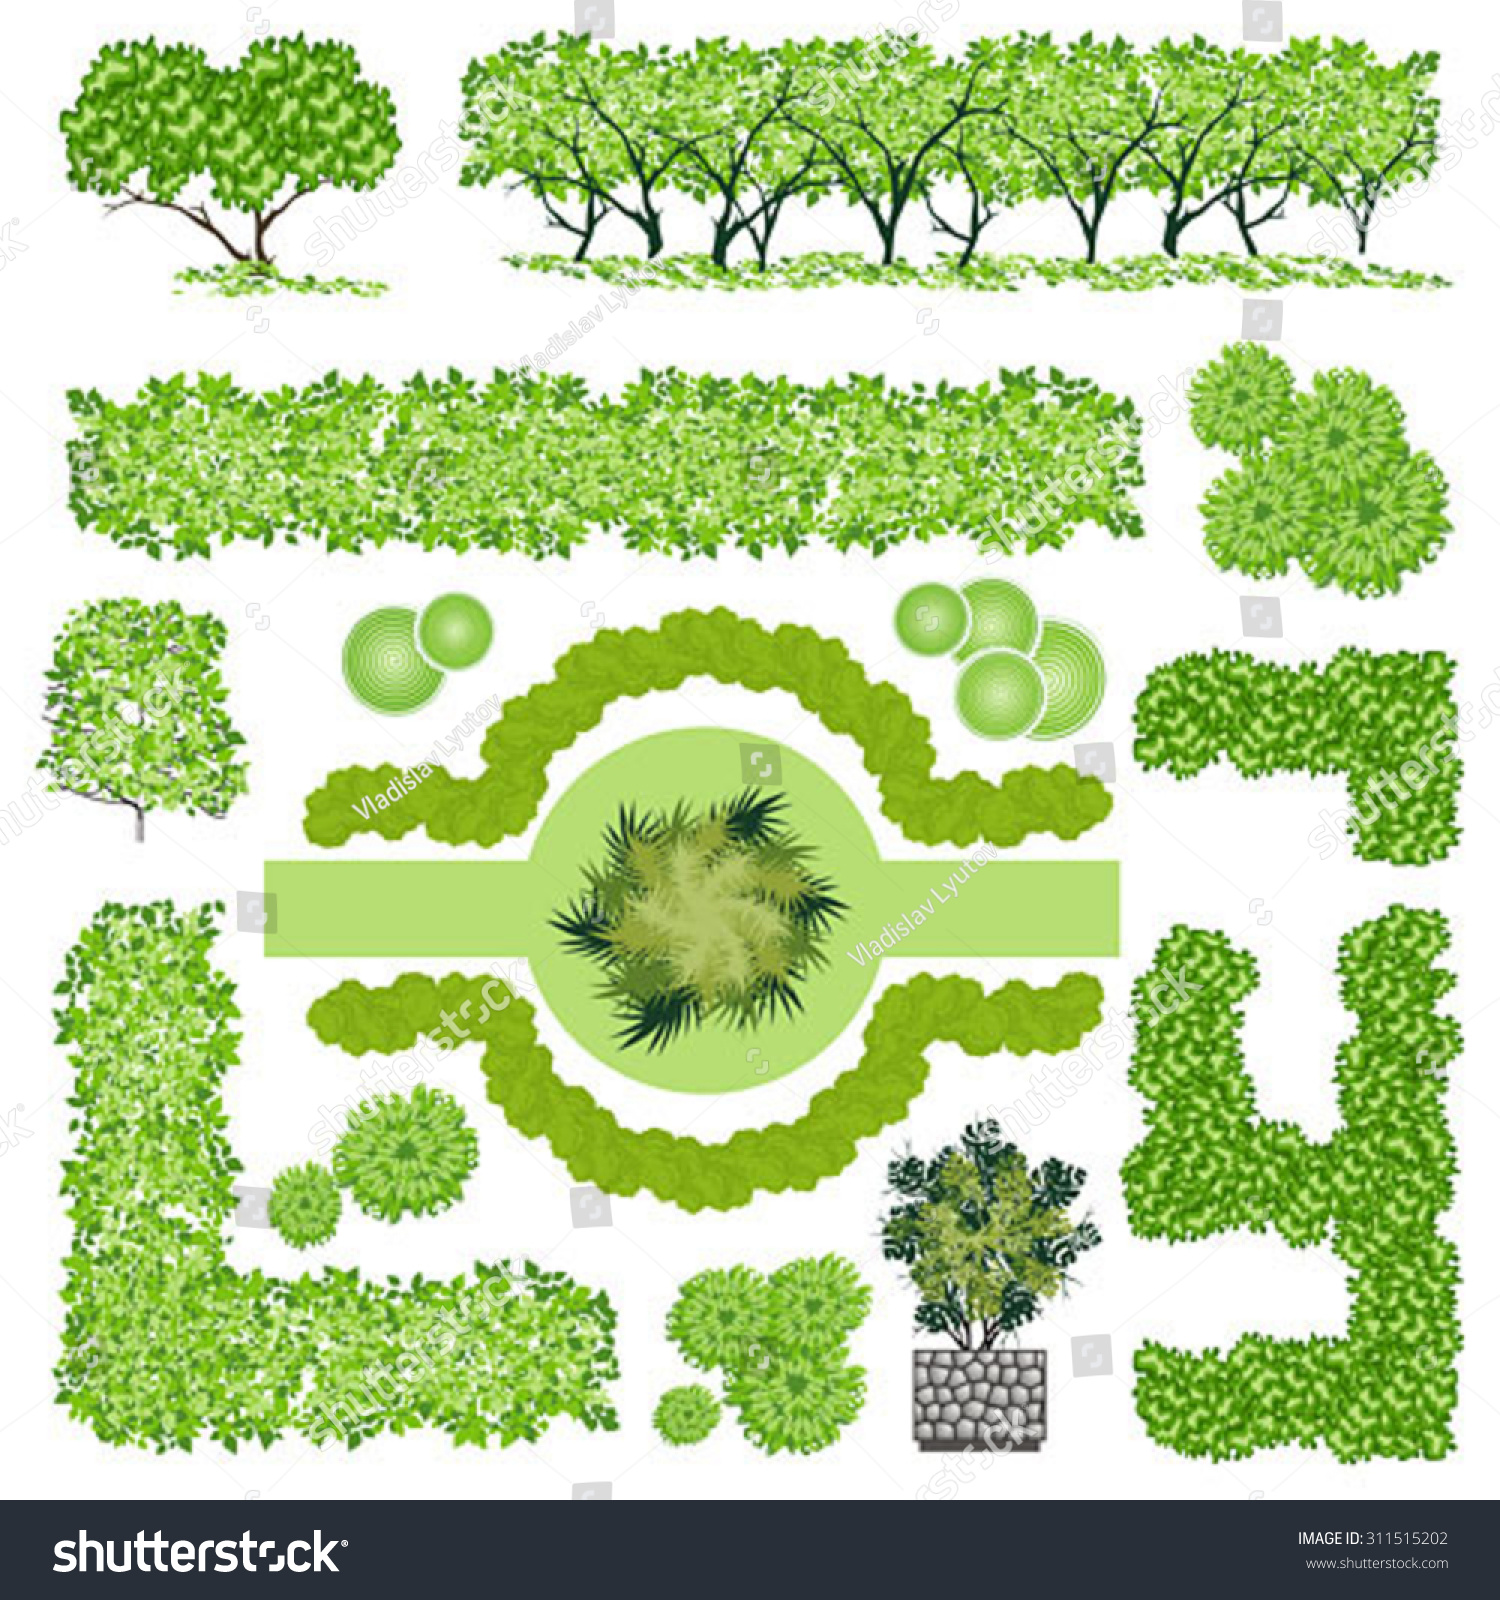 trees bush item top view landscape stock vector 311515202